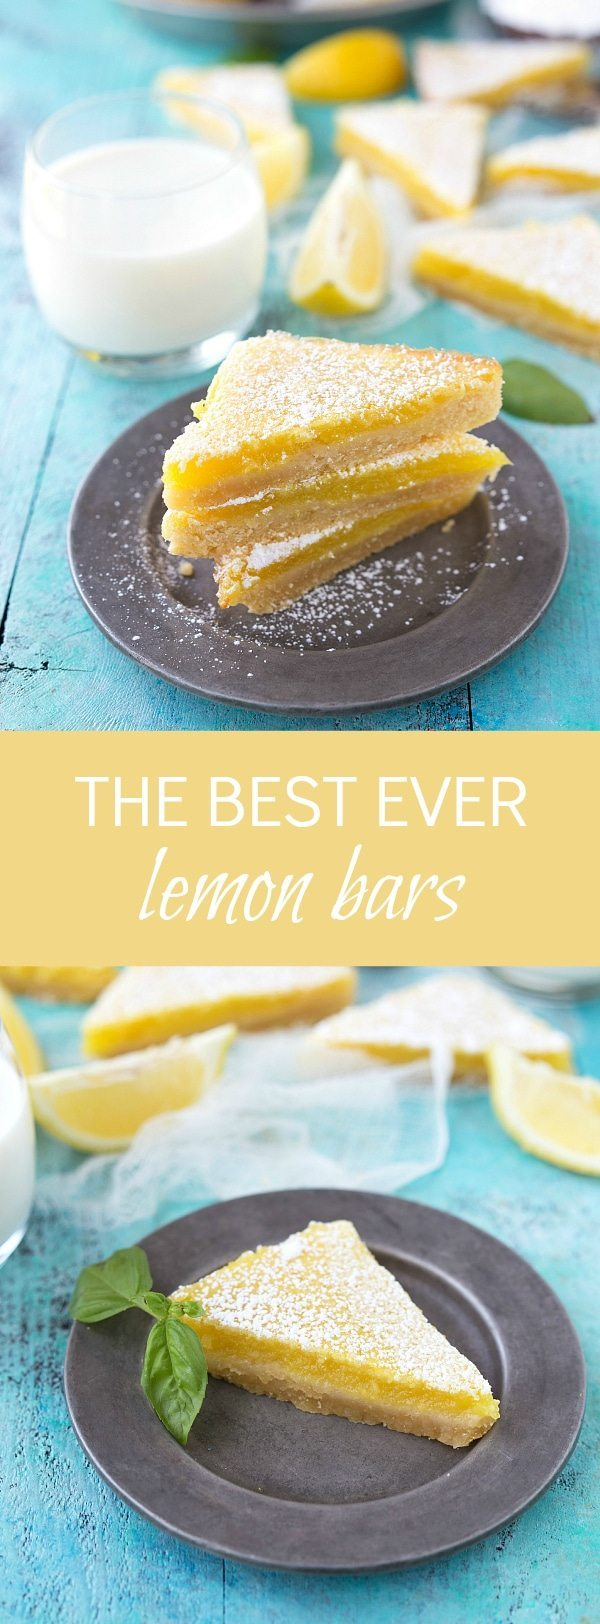 The BEST ever lemon bars - based on a recipe with 1400 reviews!